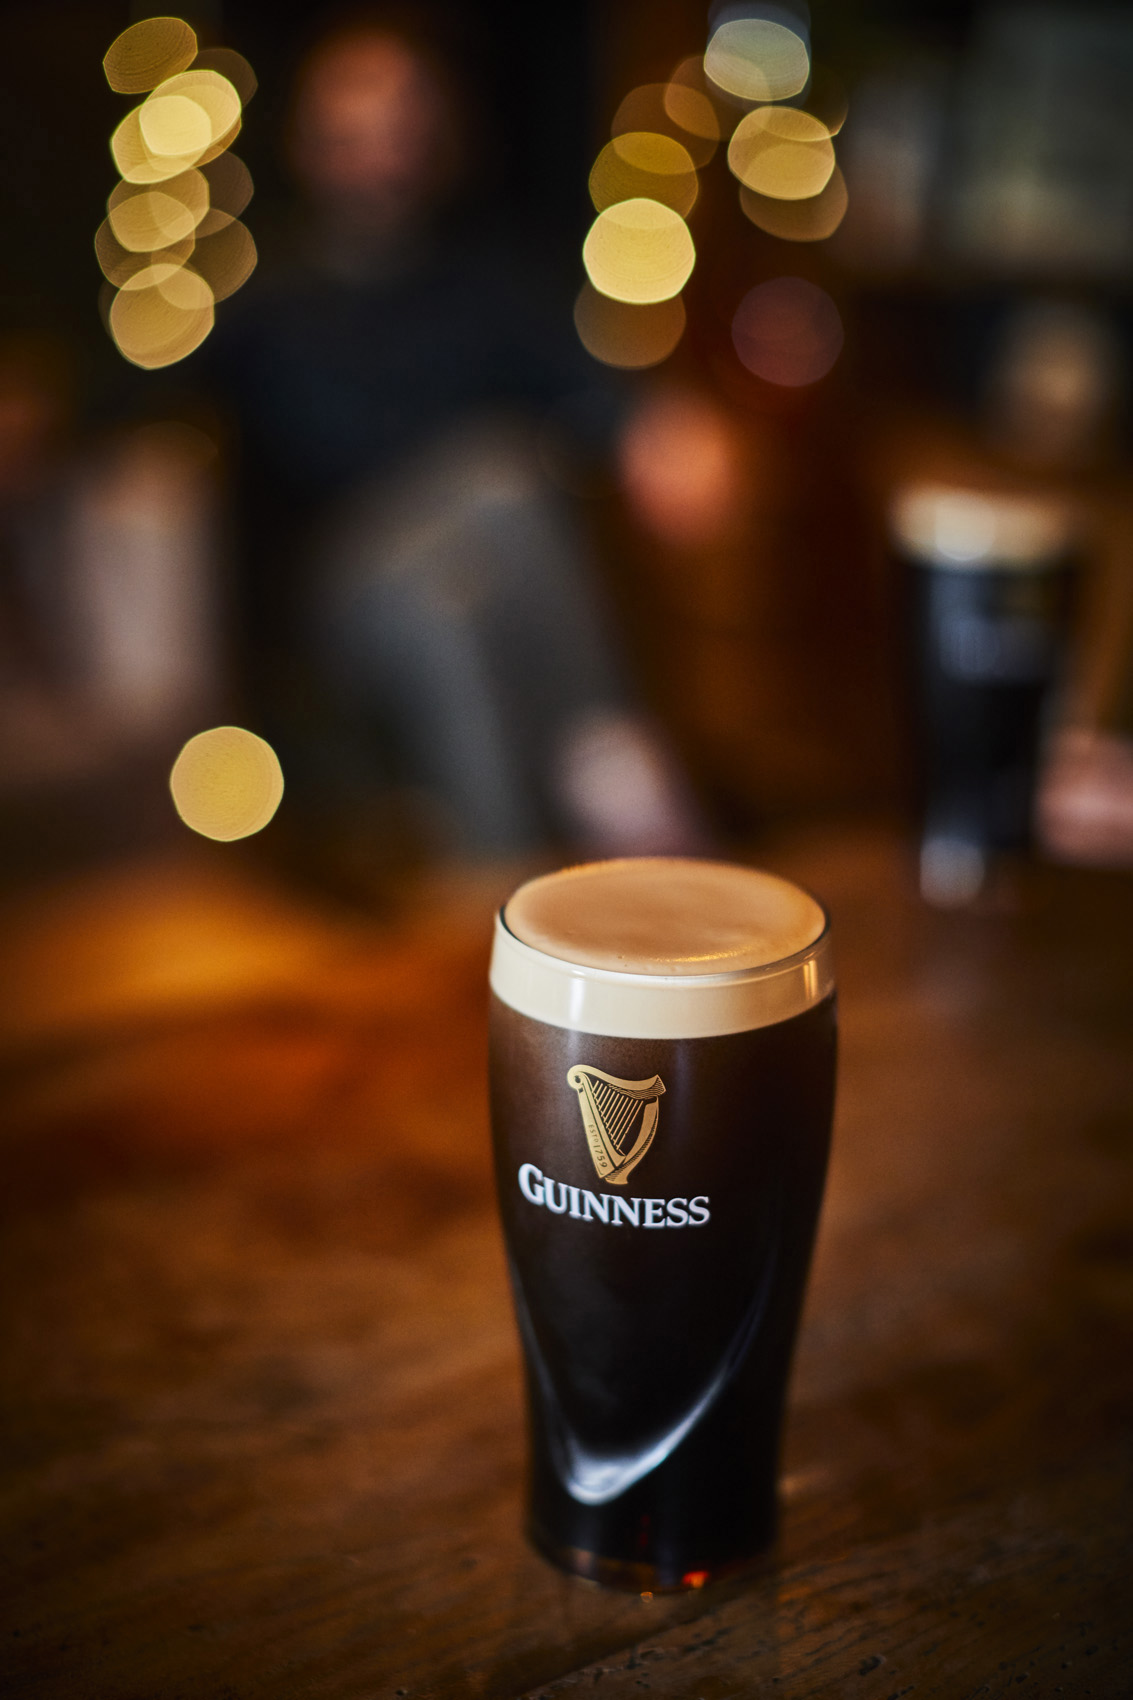 SteveRyan_Photographer_Drink_Beer_Guinness_09